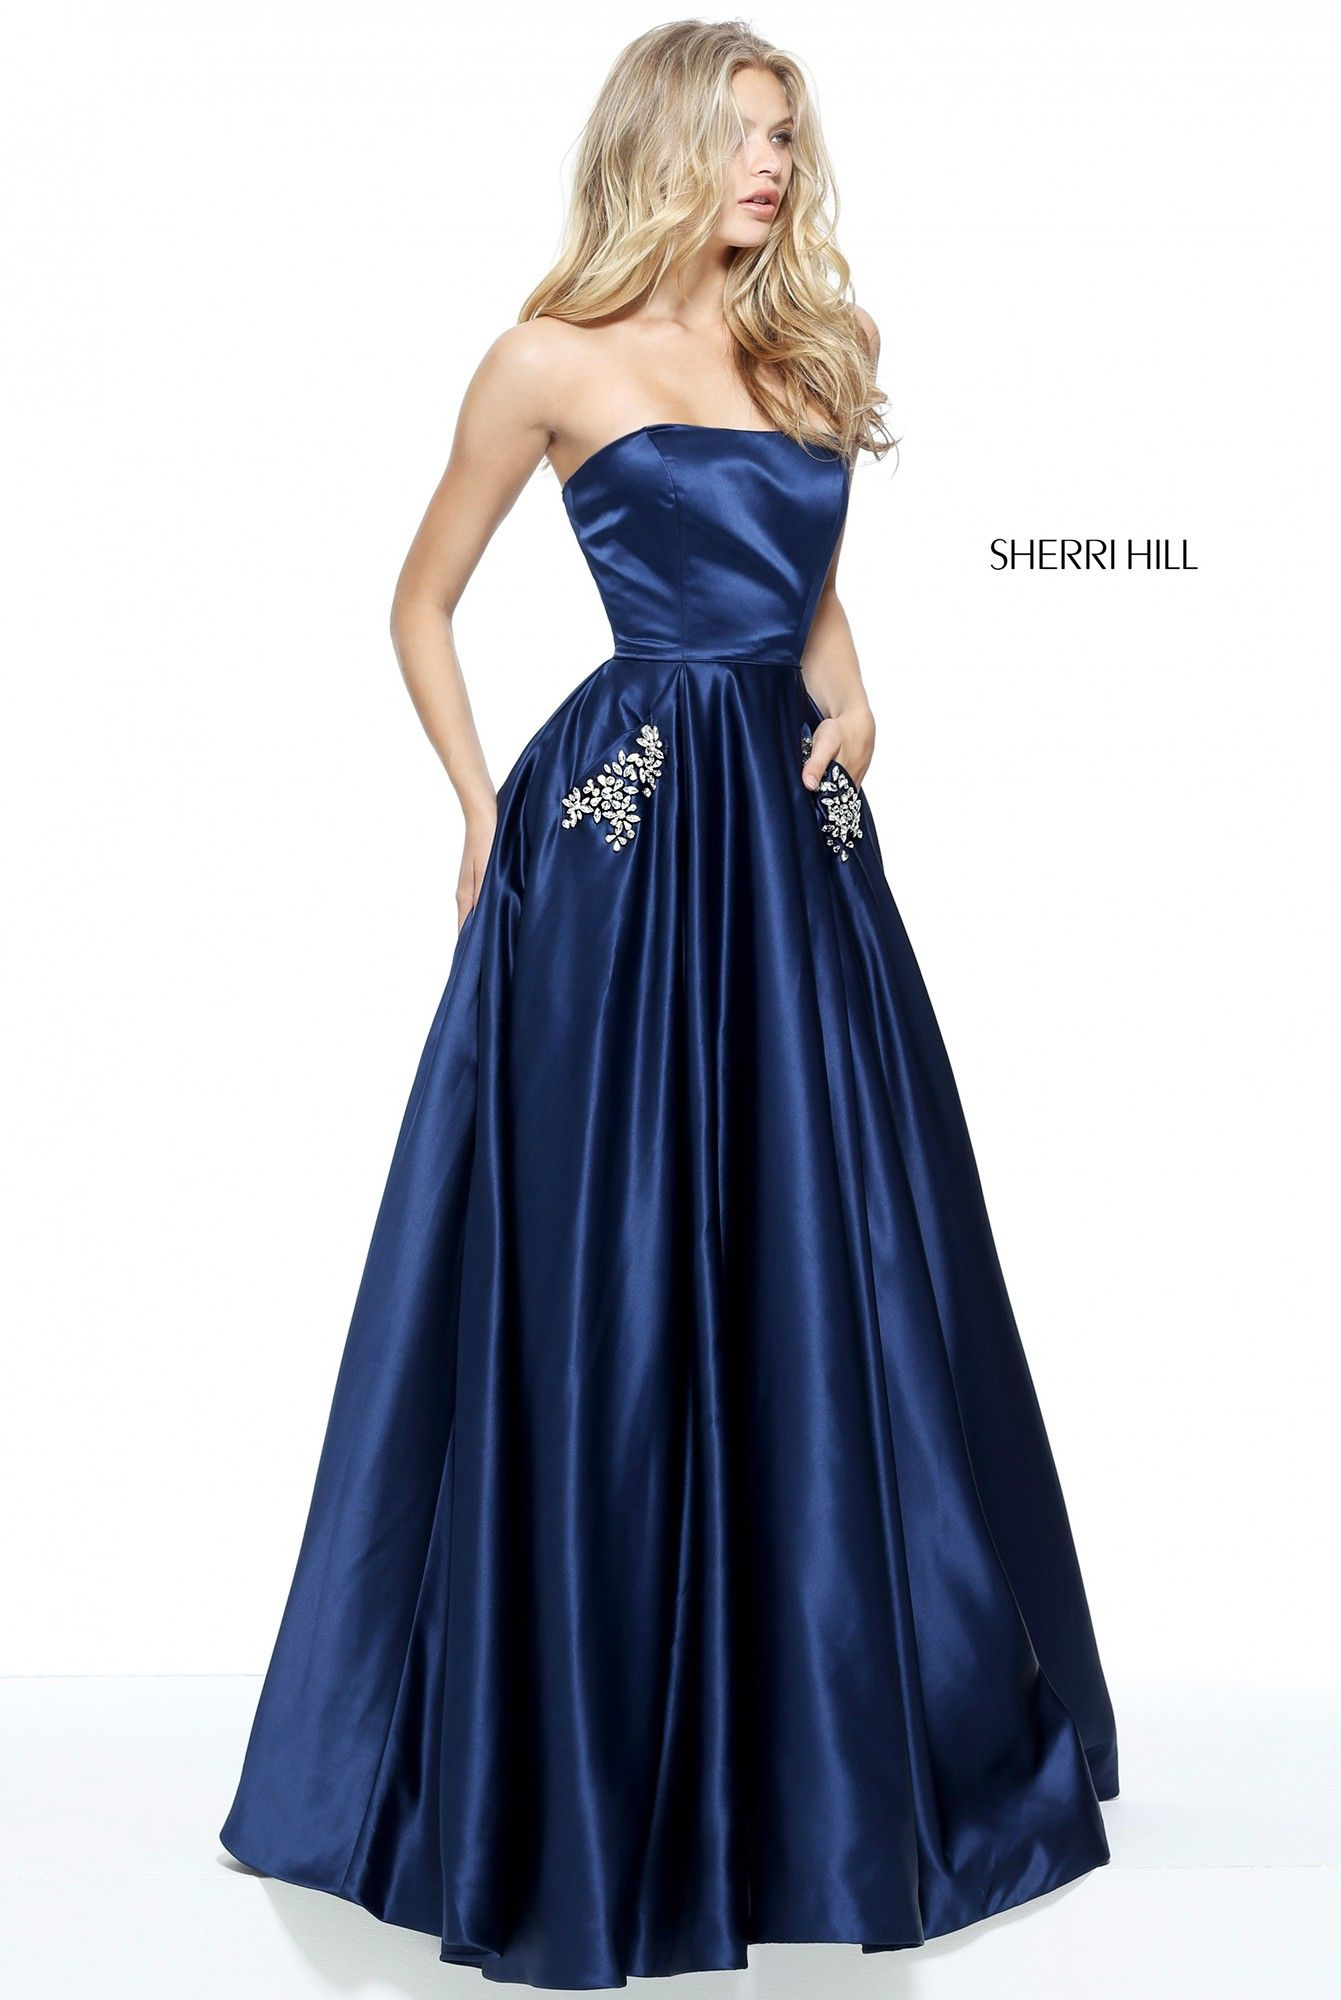 Sherri hill strapless satin ball gown ball gowns gowns and